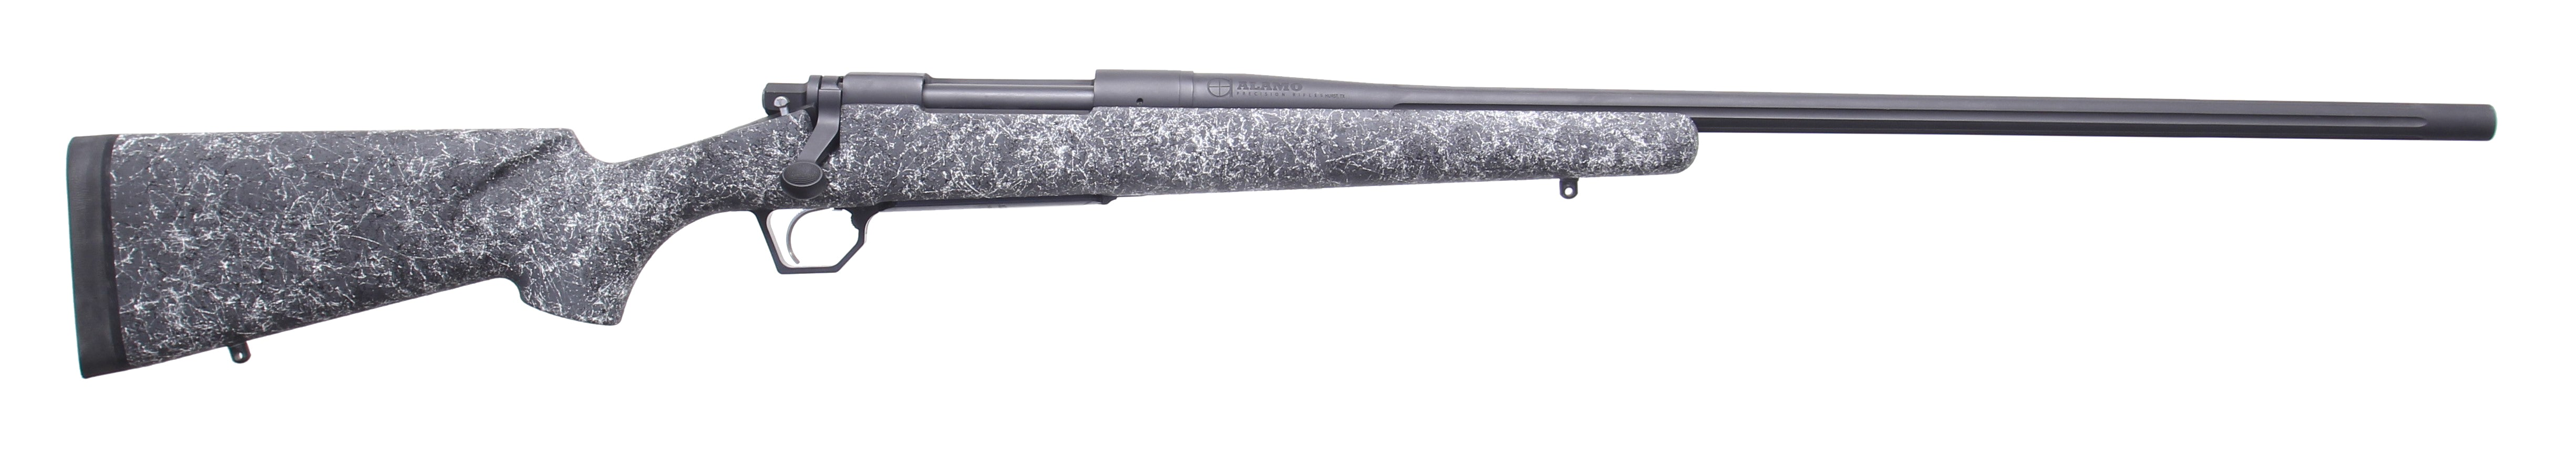 APR Custom Trued Remington 30 Nosler